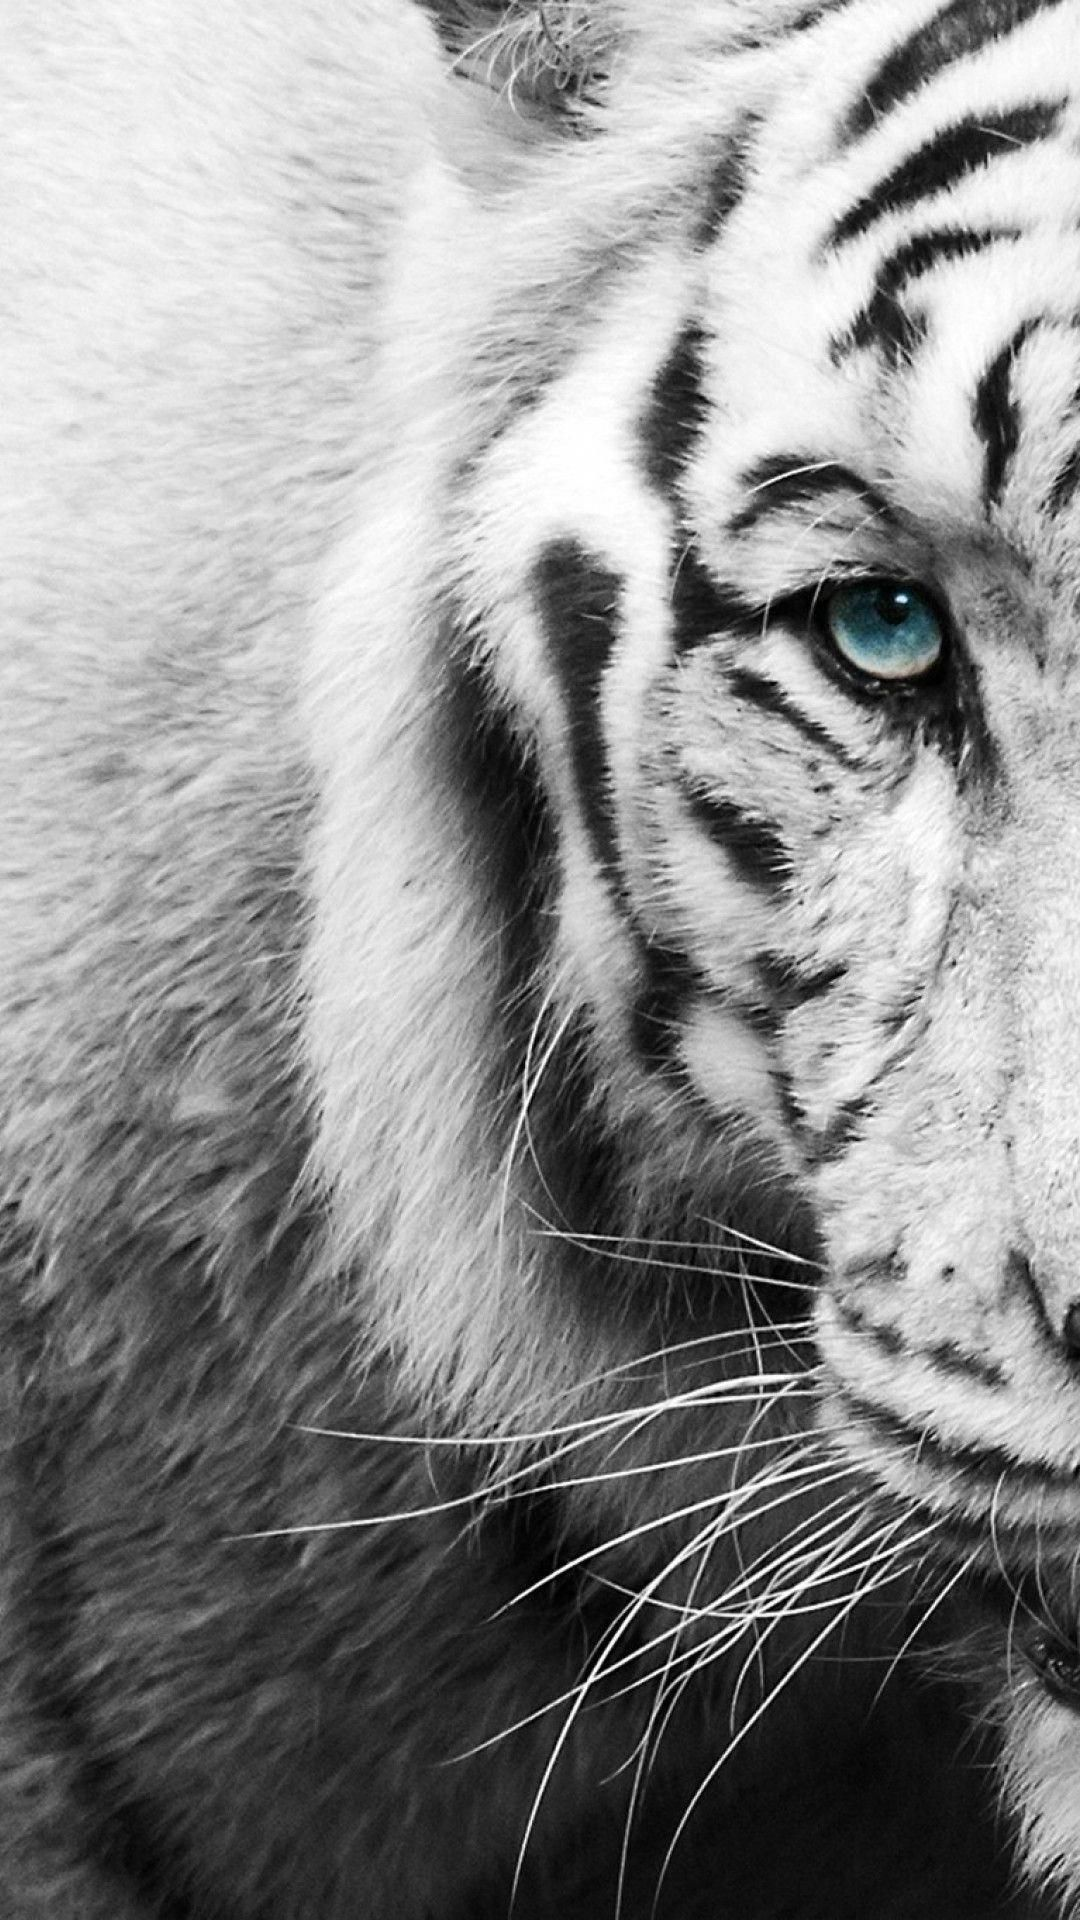 White Tiger Black And White Wallpaper Iphone Tiger Wallpaper Tiger Wallpaper Iphone